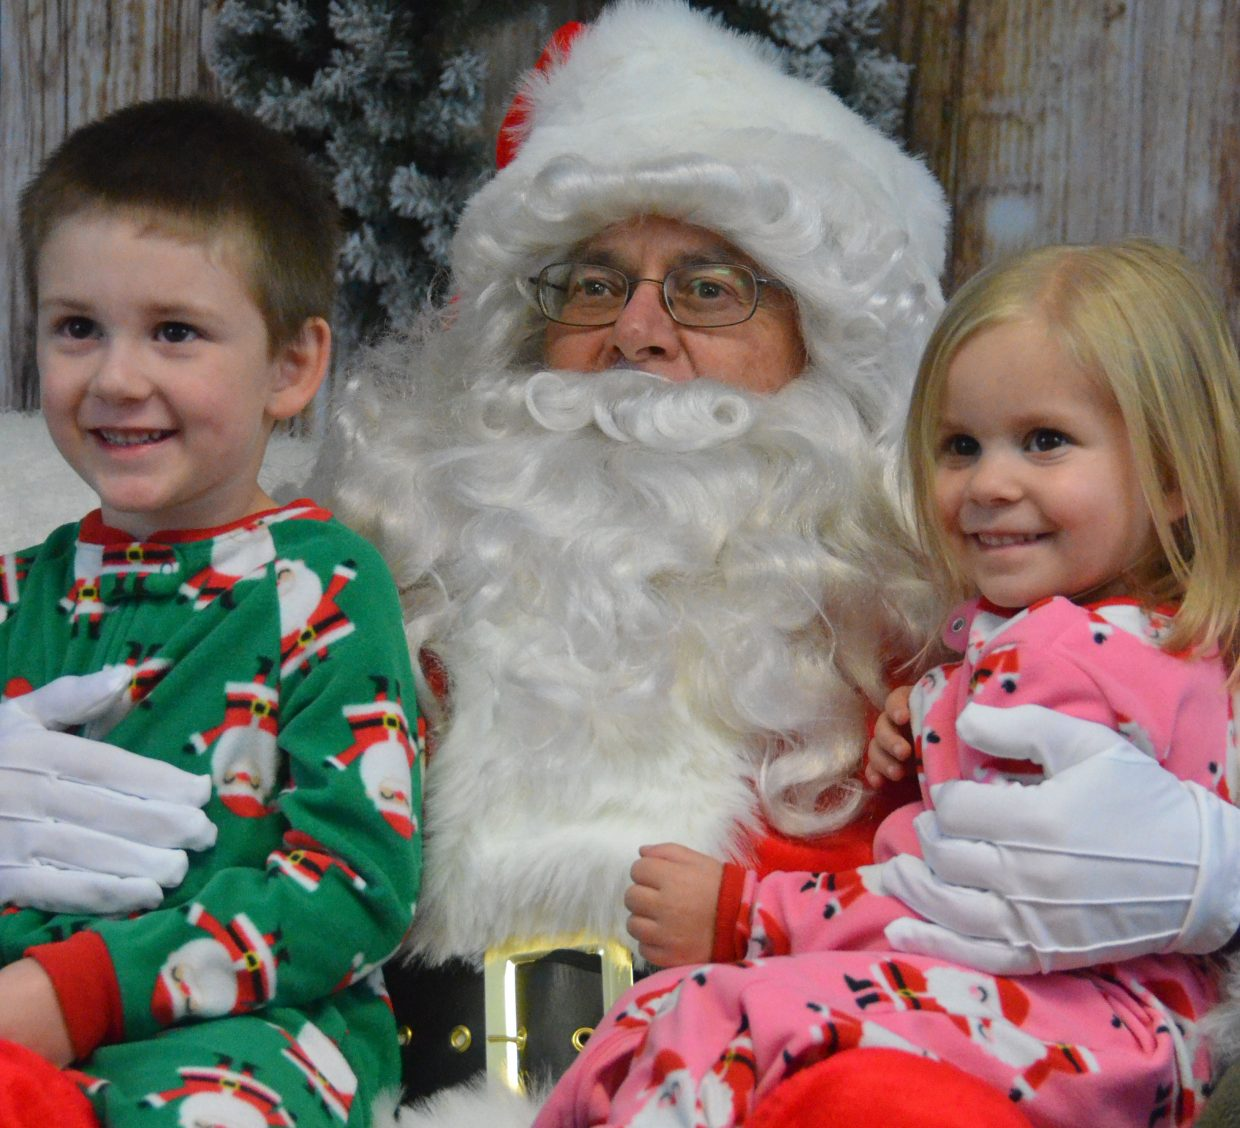 Siblings Rylan, 4, and Xia Hedman, 3, smile for the camera in their holiday pajamas along with jolly old St. Nick during Letters to Santa Tuesday at Justin Stokes State Farm Insurance.